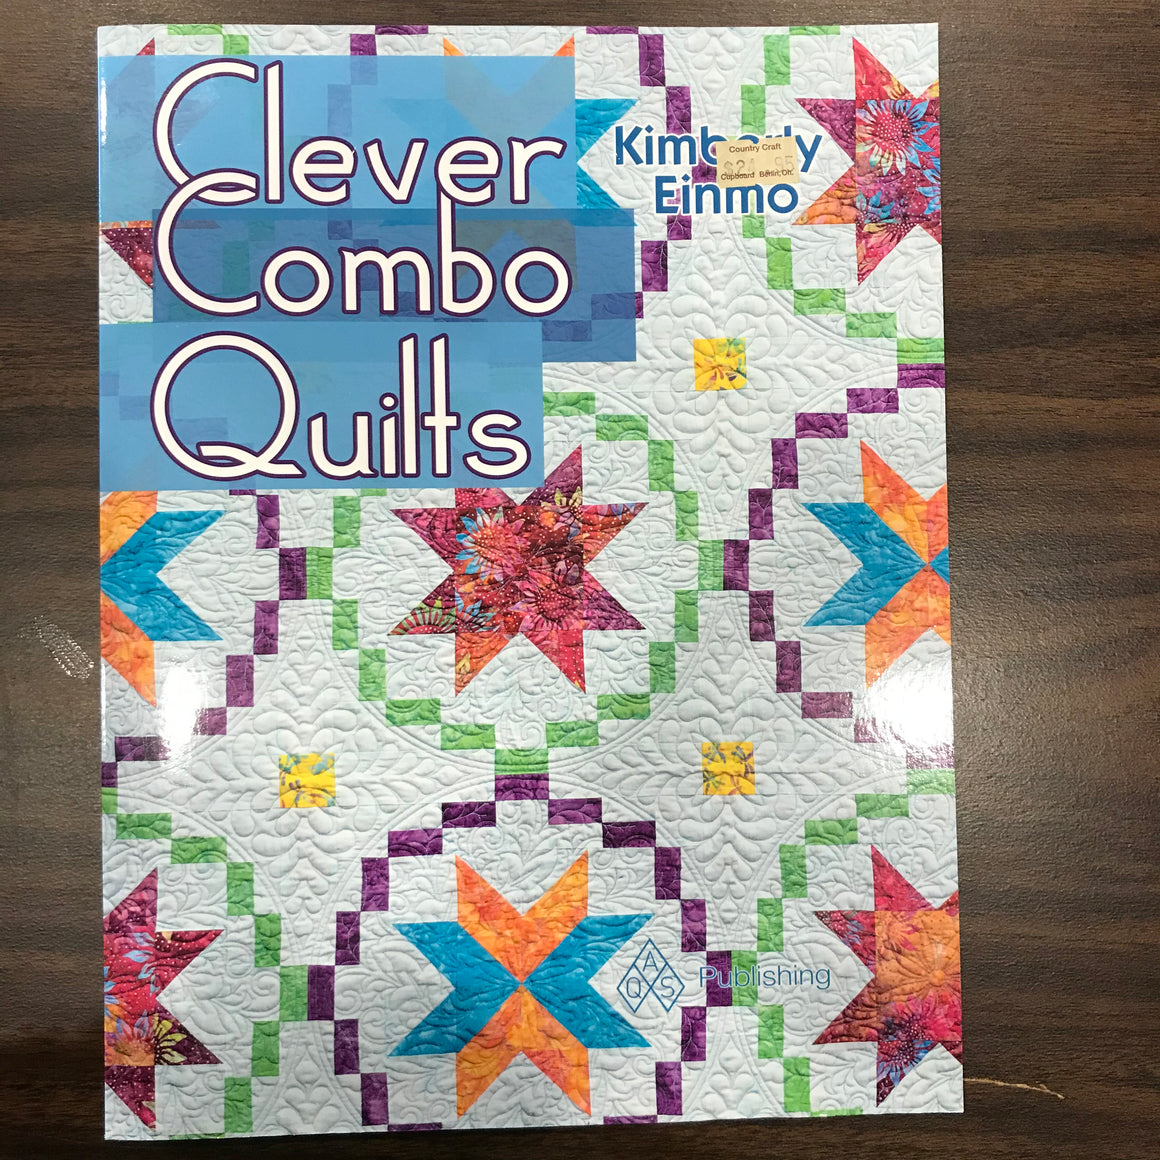 Clever Combo Quilts